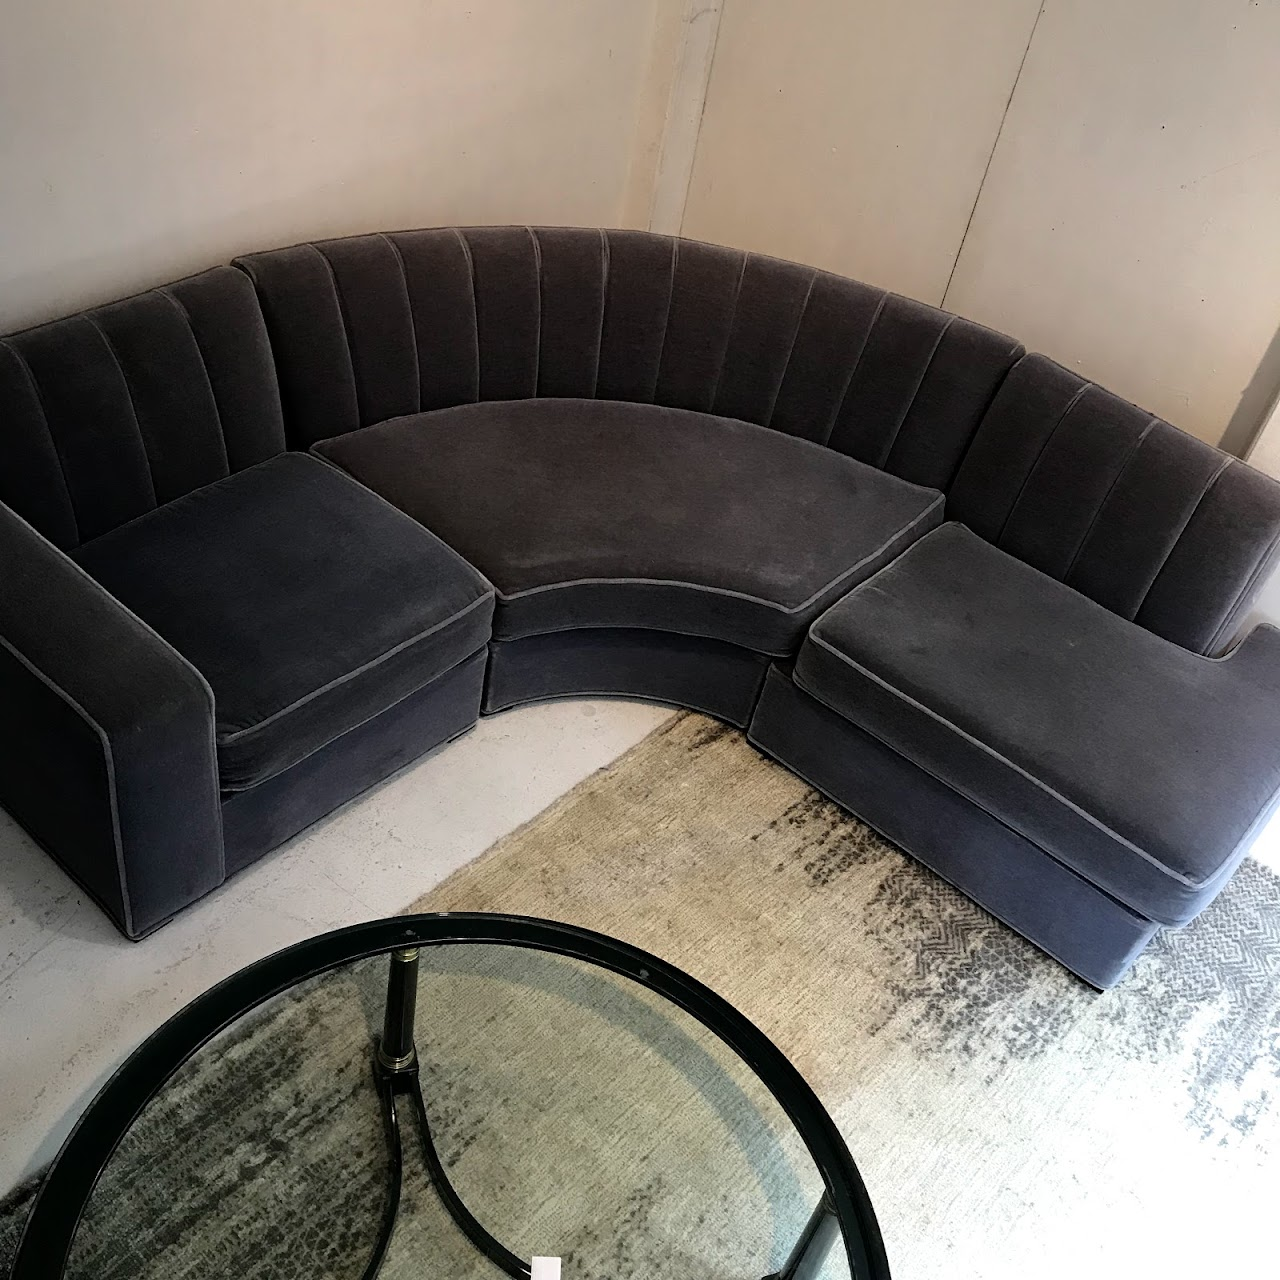 Magnificent Lilac Mohair Curved Sectional Sofa Shophousingworks Ibusinesslaw Wood Chair Design Ideas Ibusinesslaworg